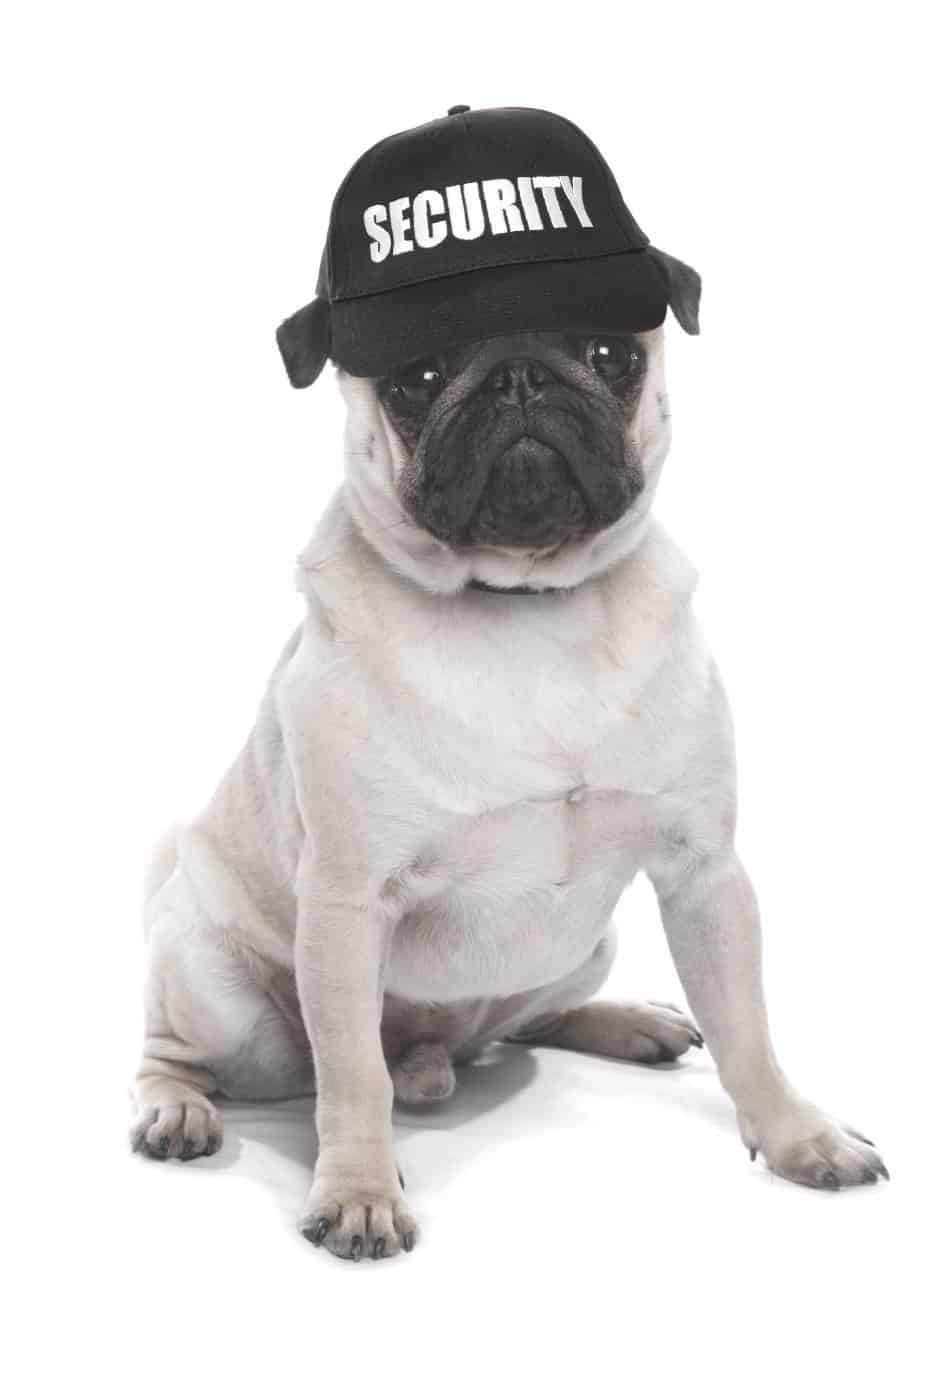 security guard dog pug wearing a hat that says security